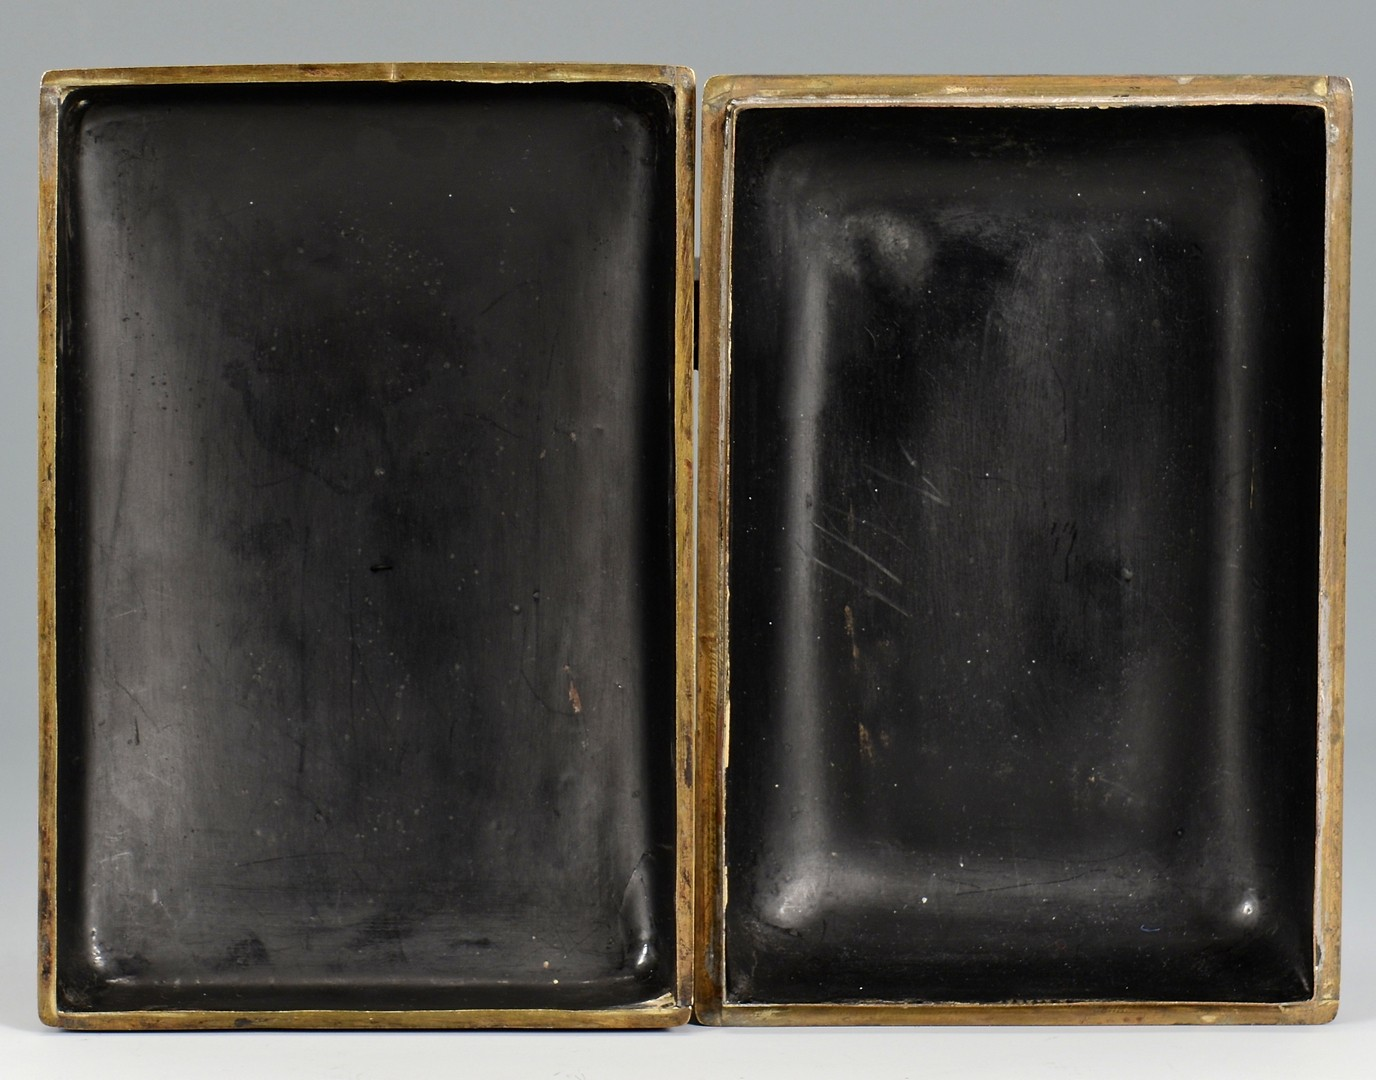 Lot 4010110: 2 Chinese Carved Lacquer Boxes